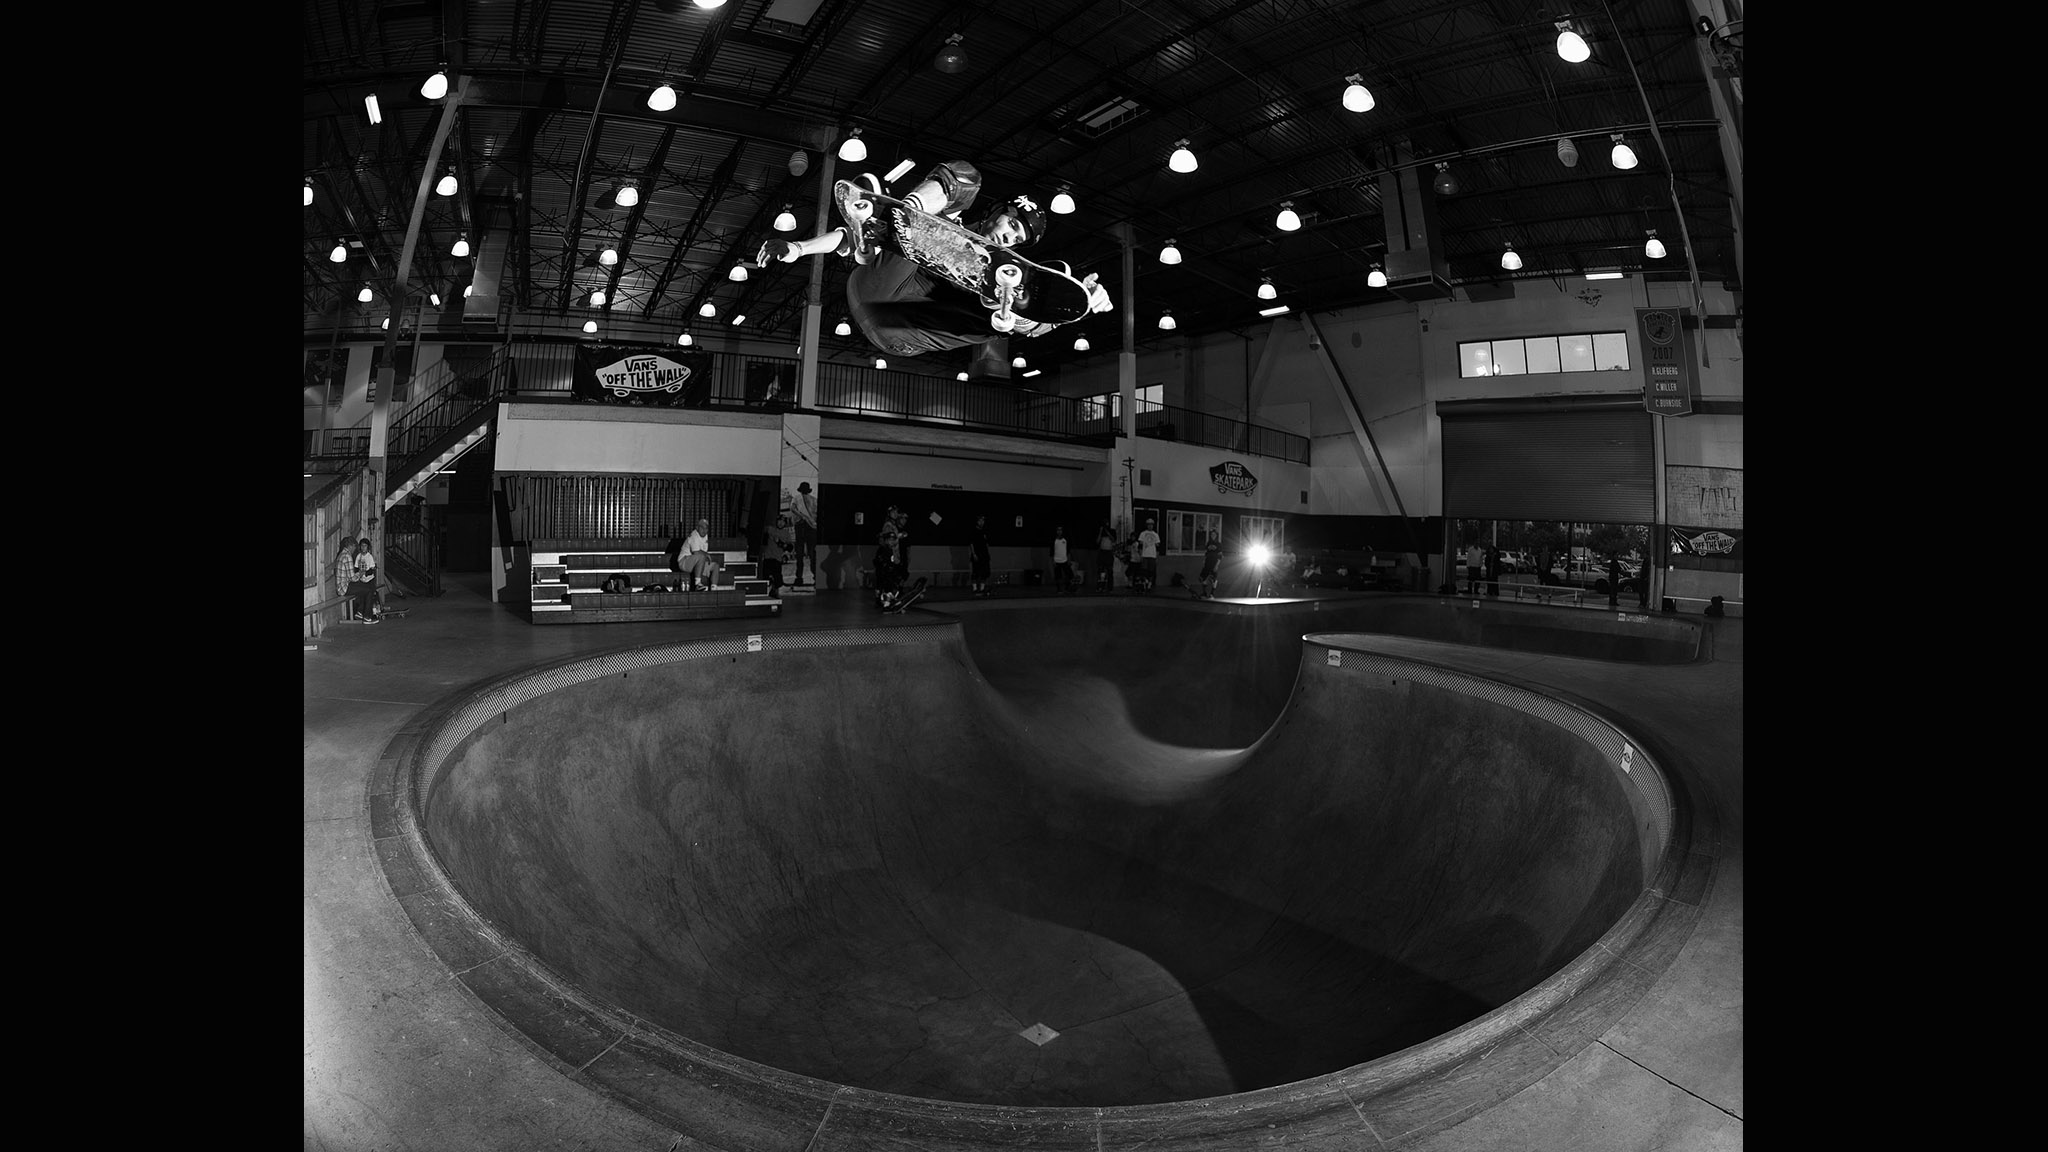 Frontside ollie alternate view